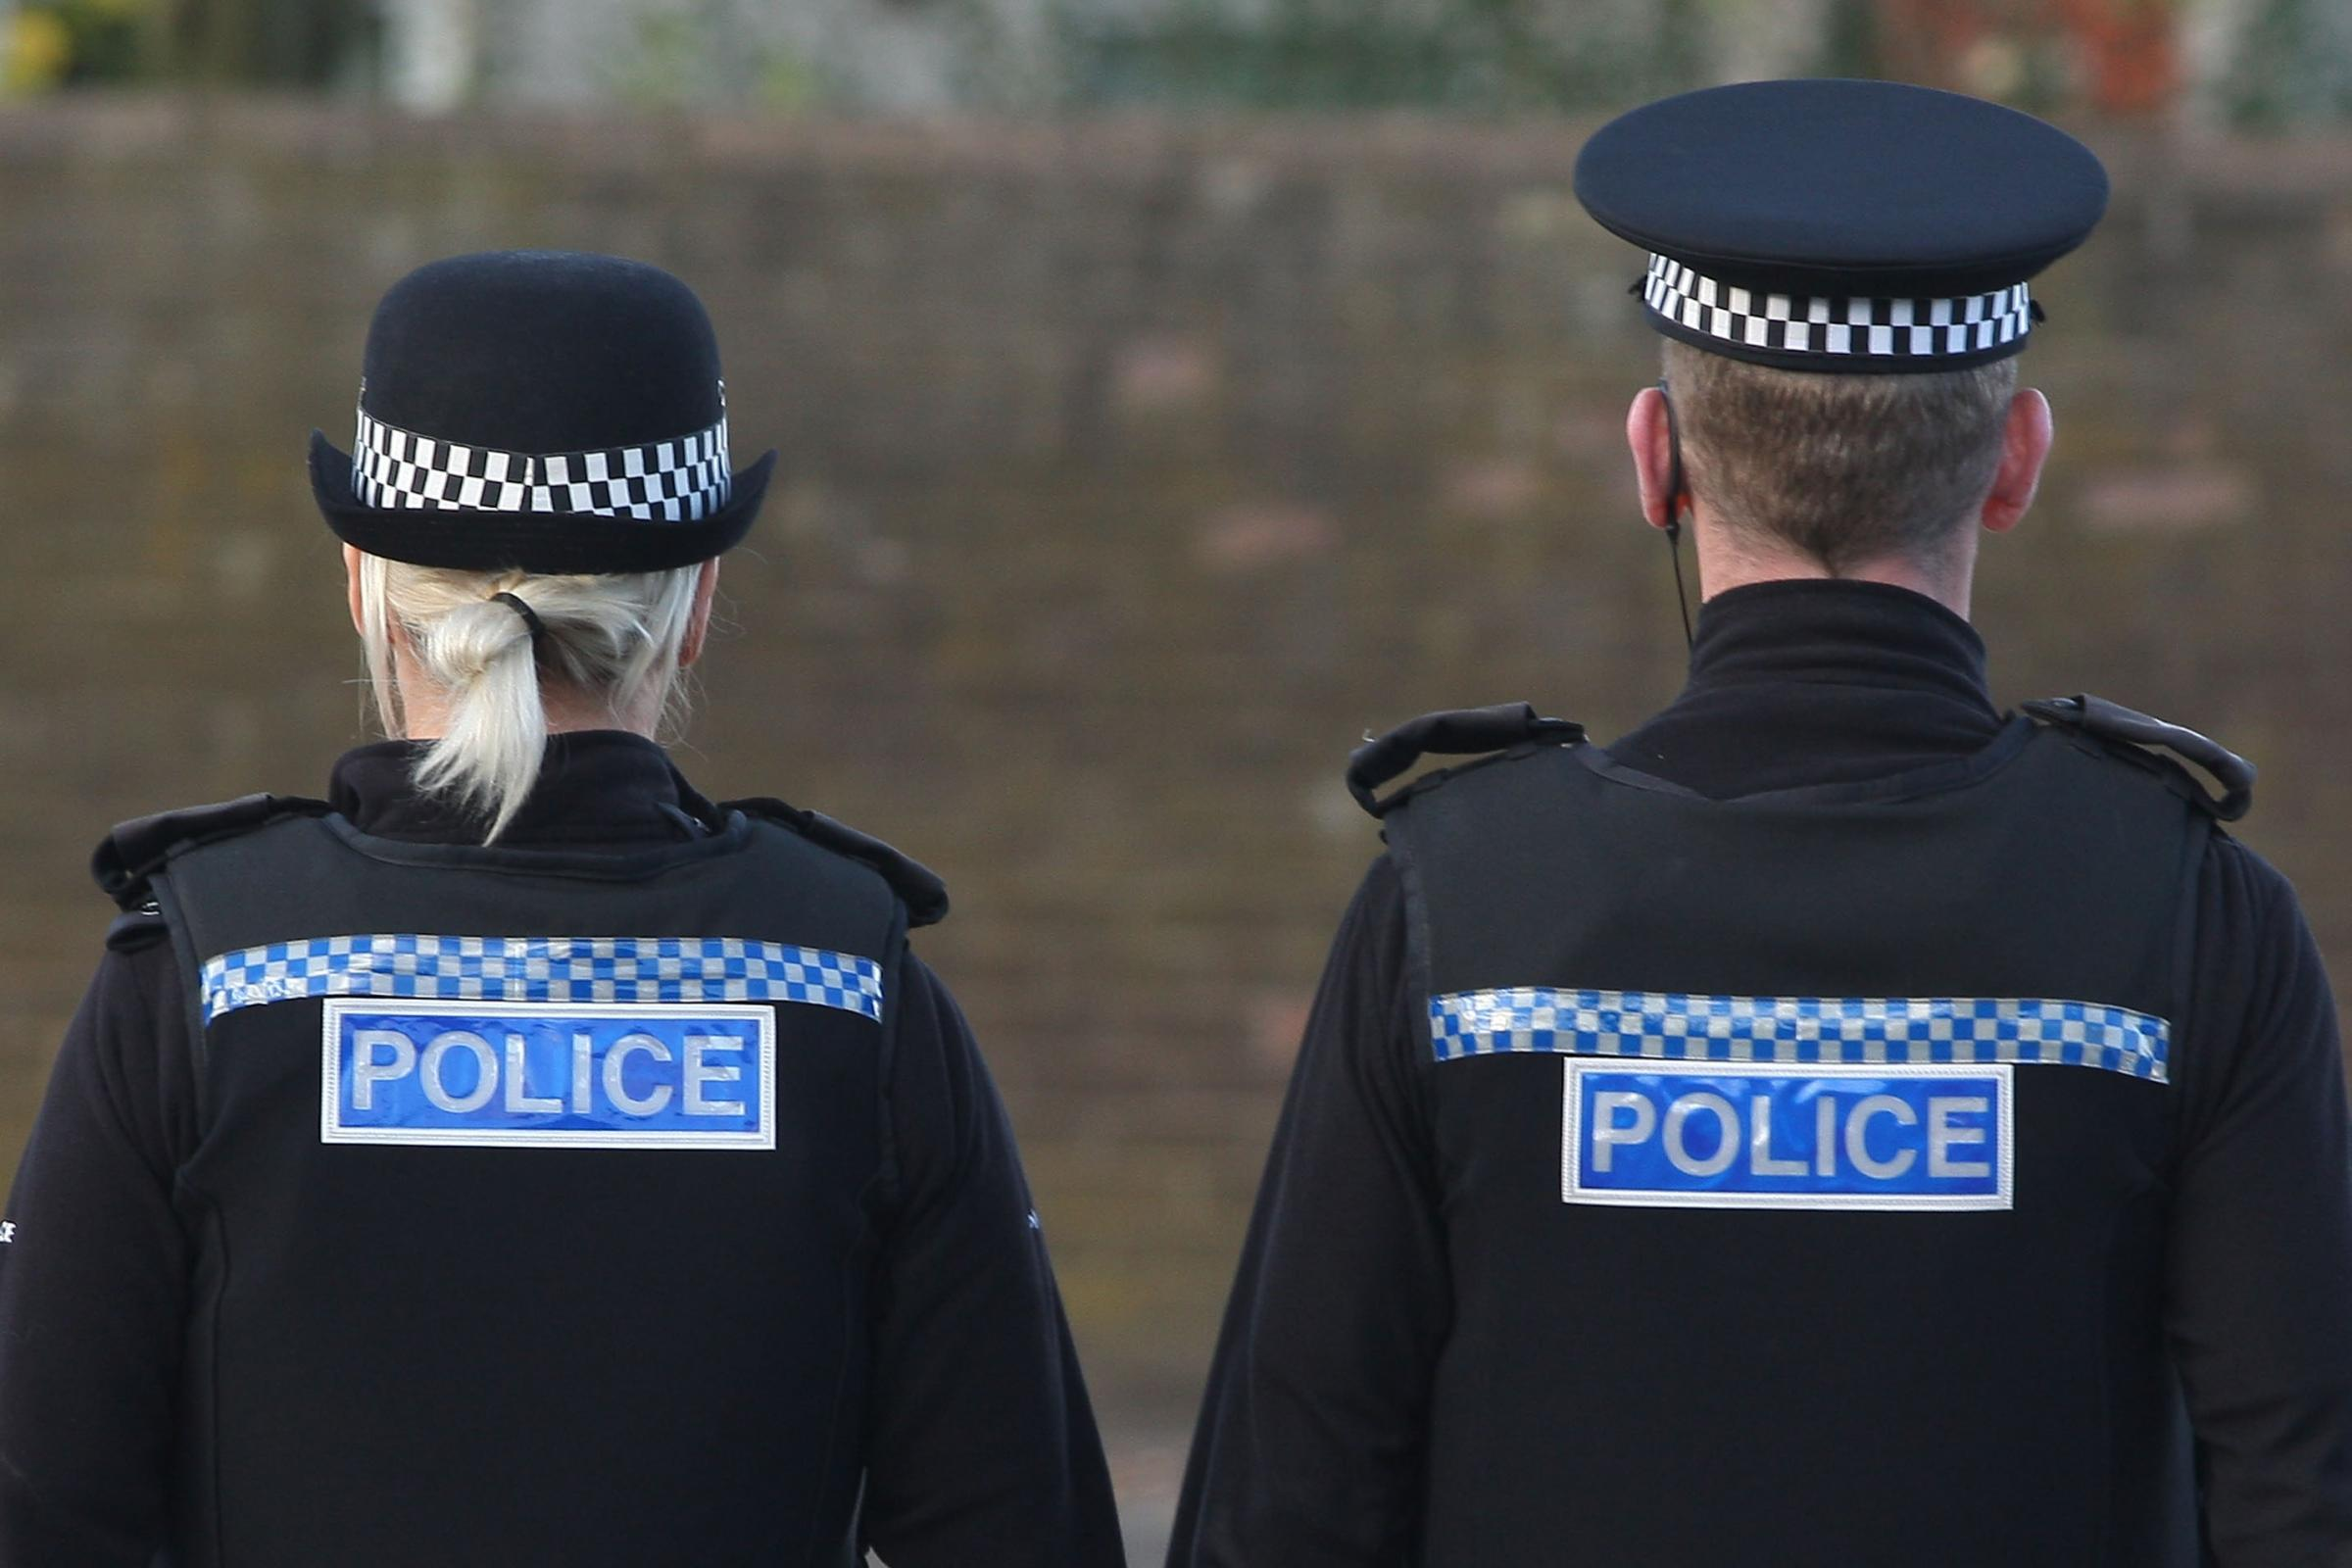 Part of police station closed after disturbance